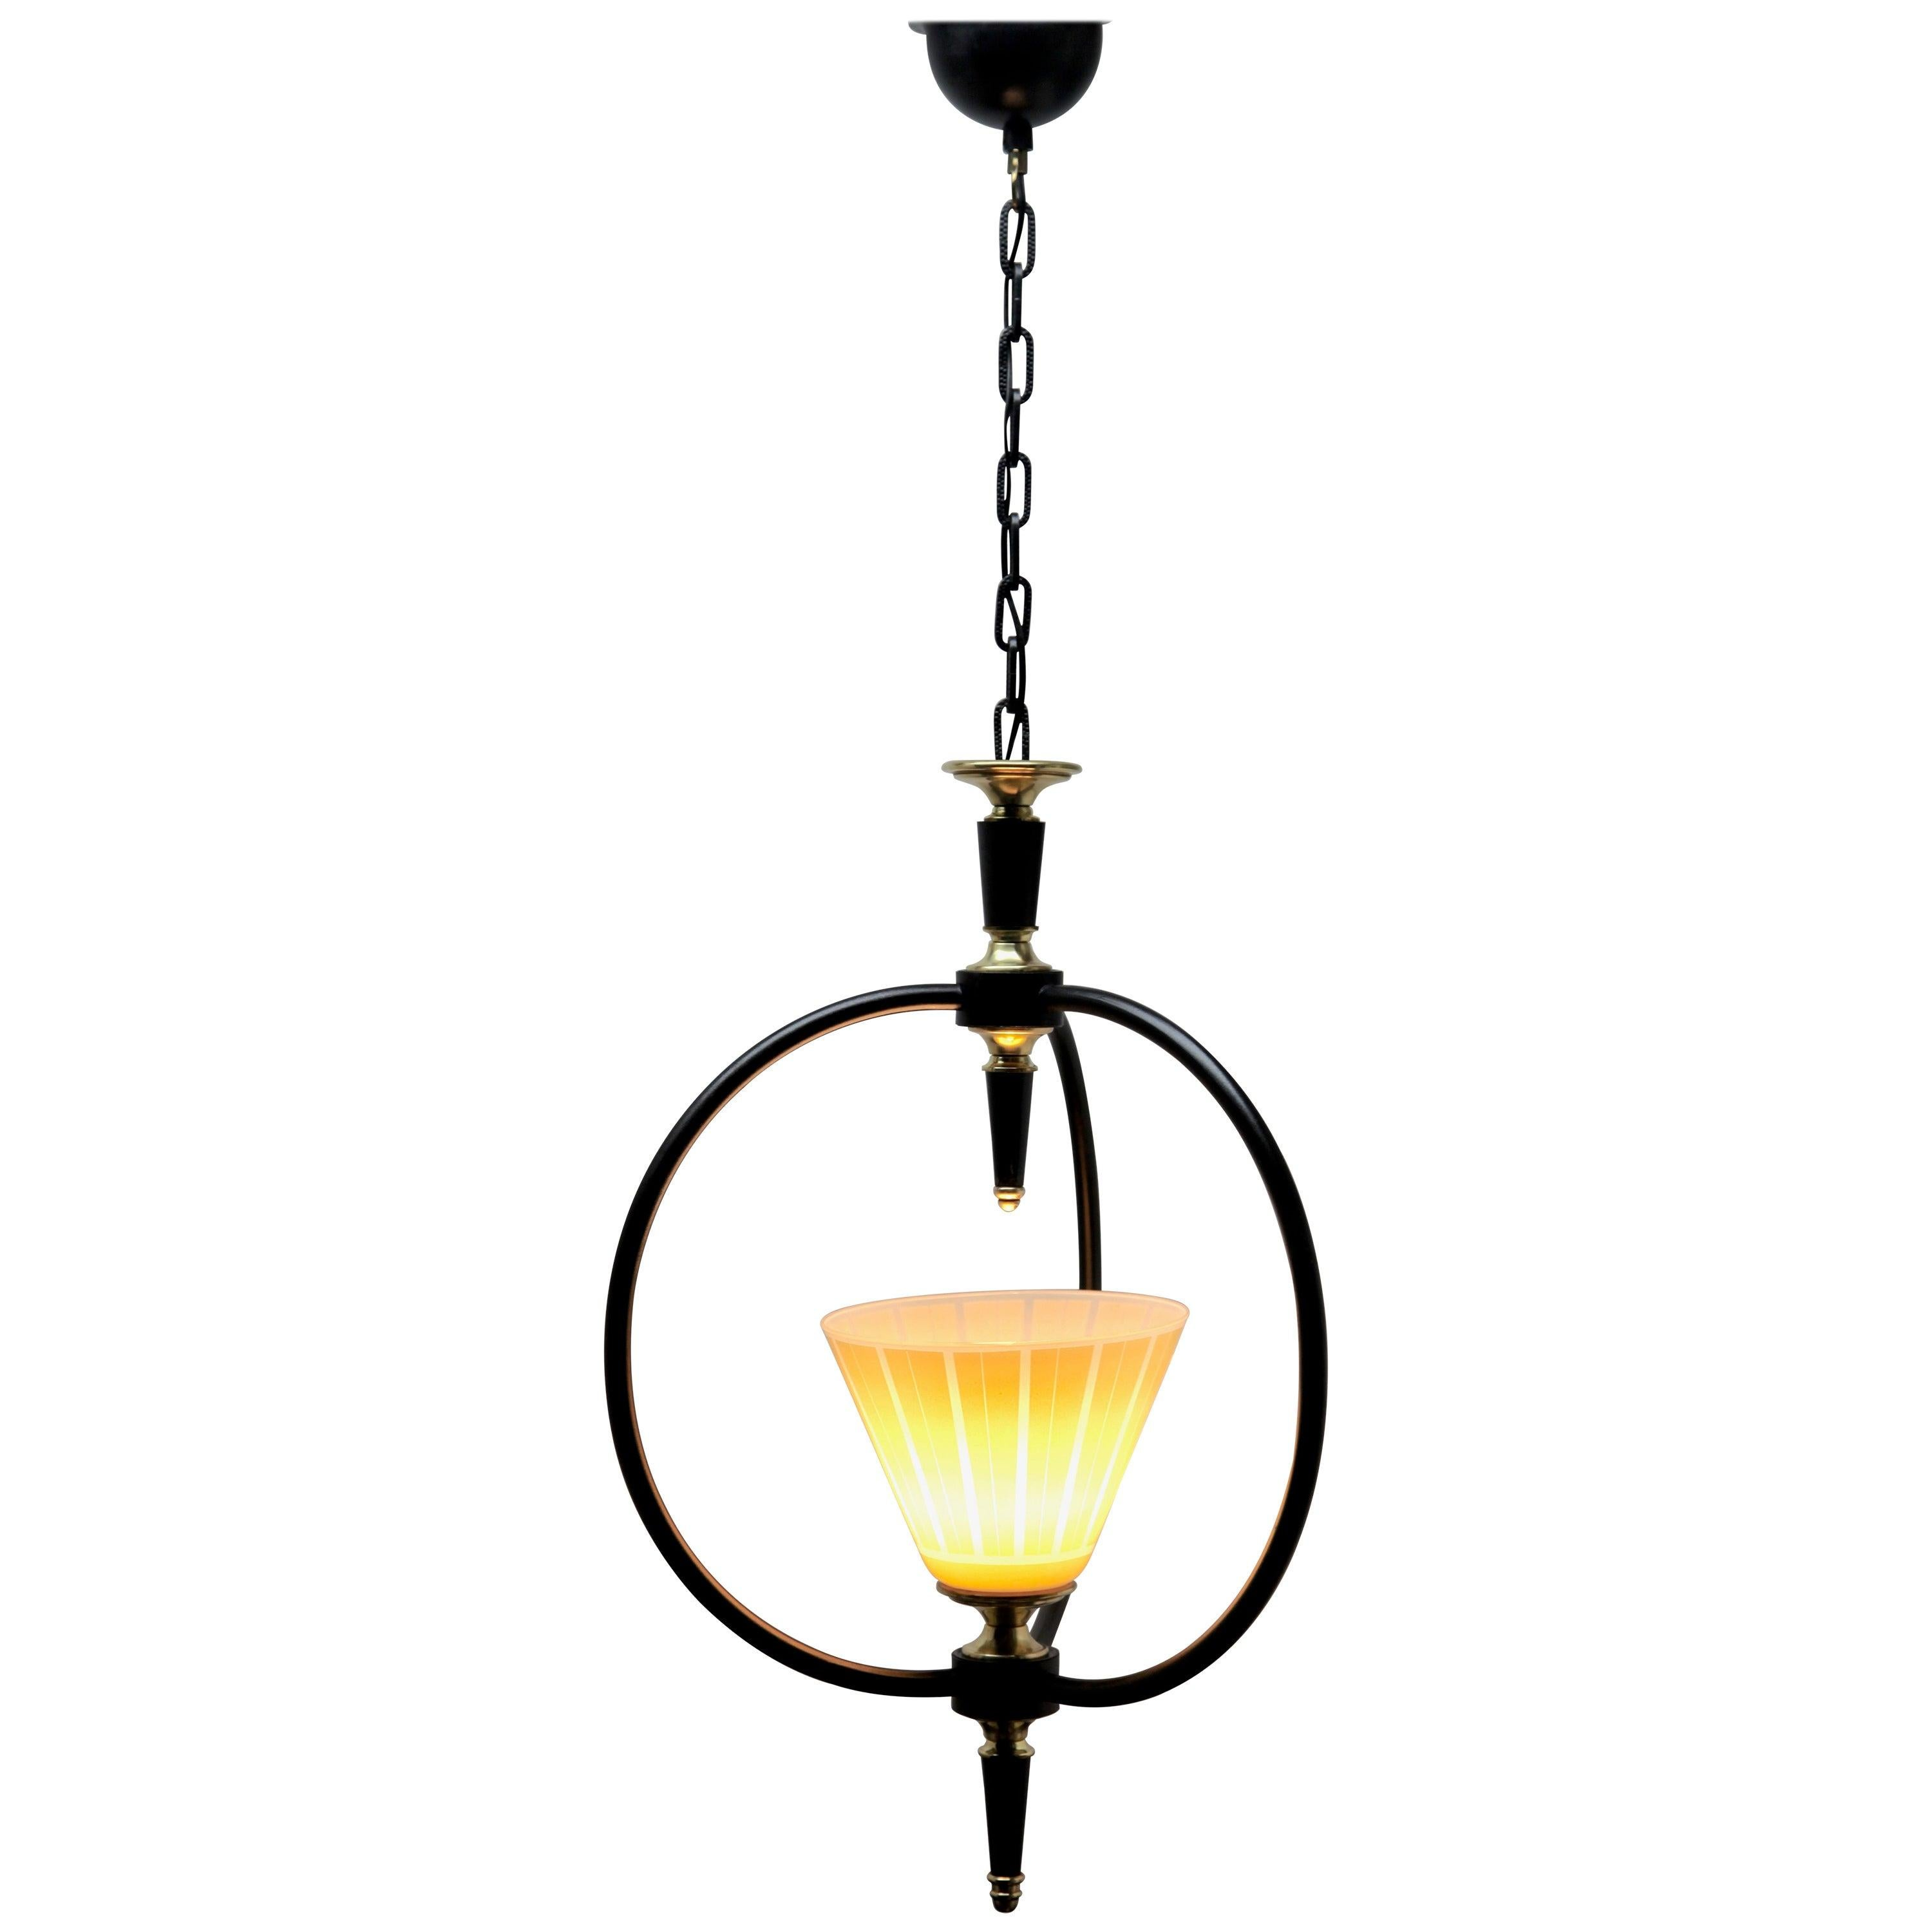 Midcentury Pendant Lobby Light Metal and Opaline Lampshade, 1950s